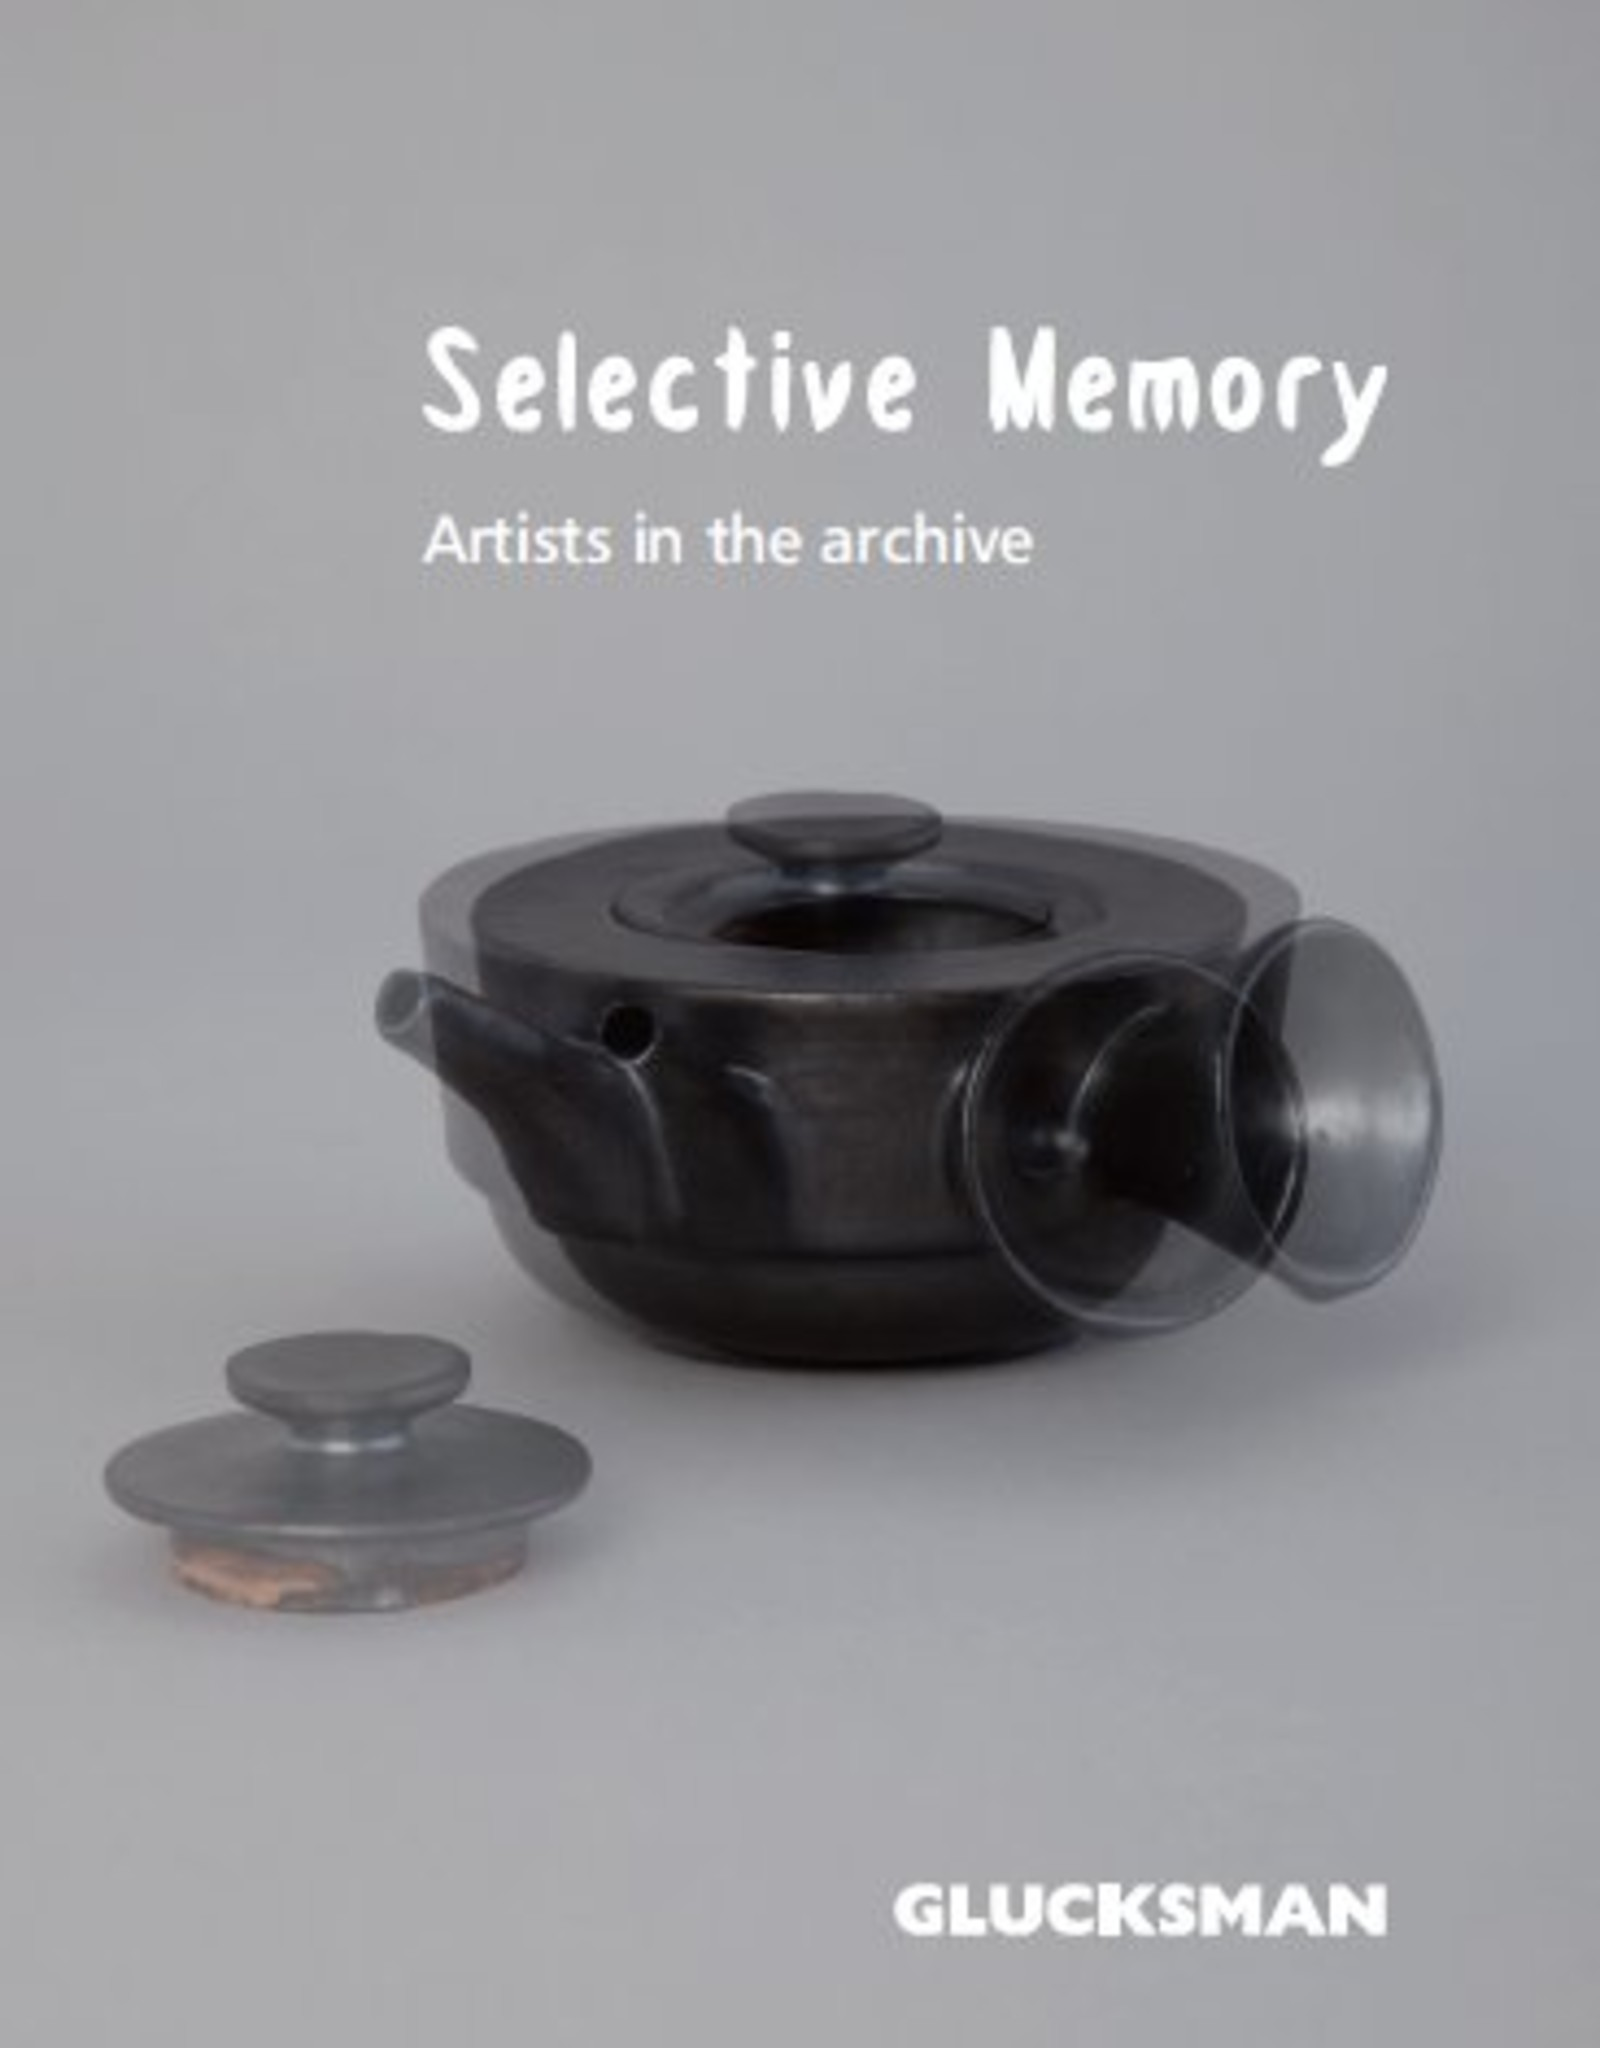 Selective Memory: Artists in the archive